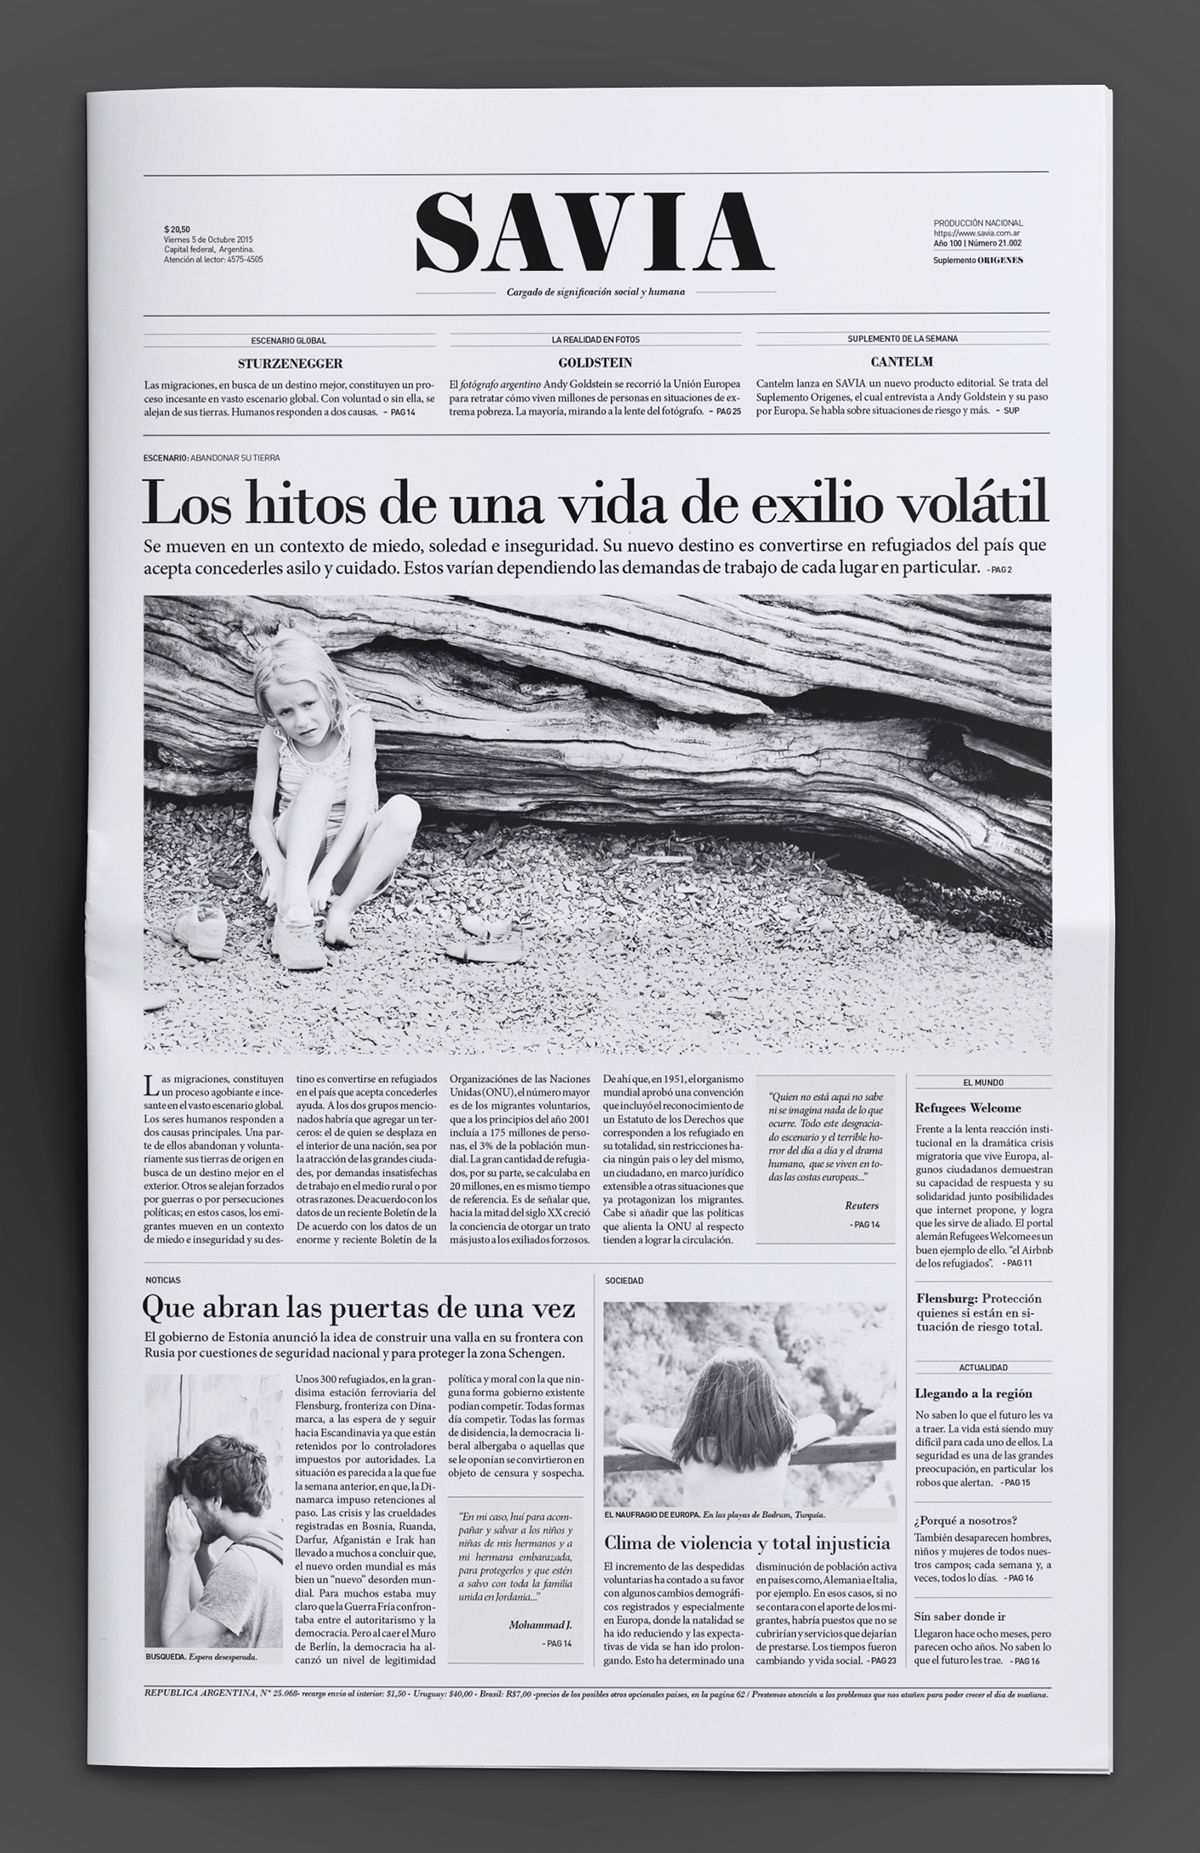 Pin by Matthew Curtis on Newspapers | Pinterest | Newspaper, Behance ...